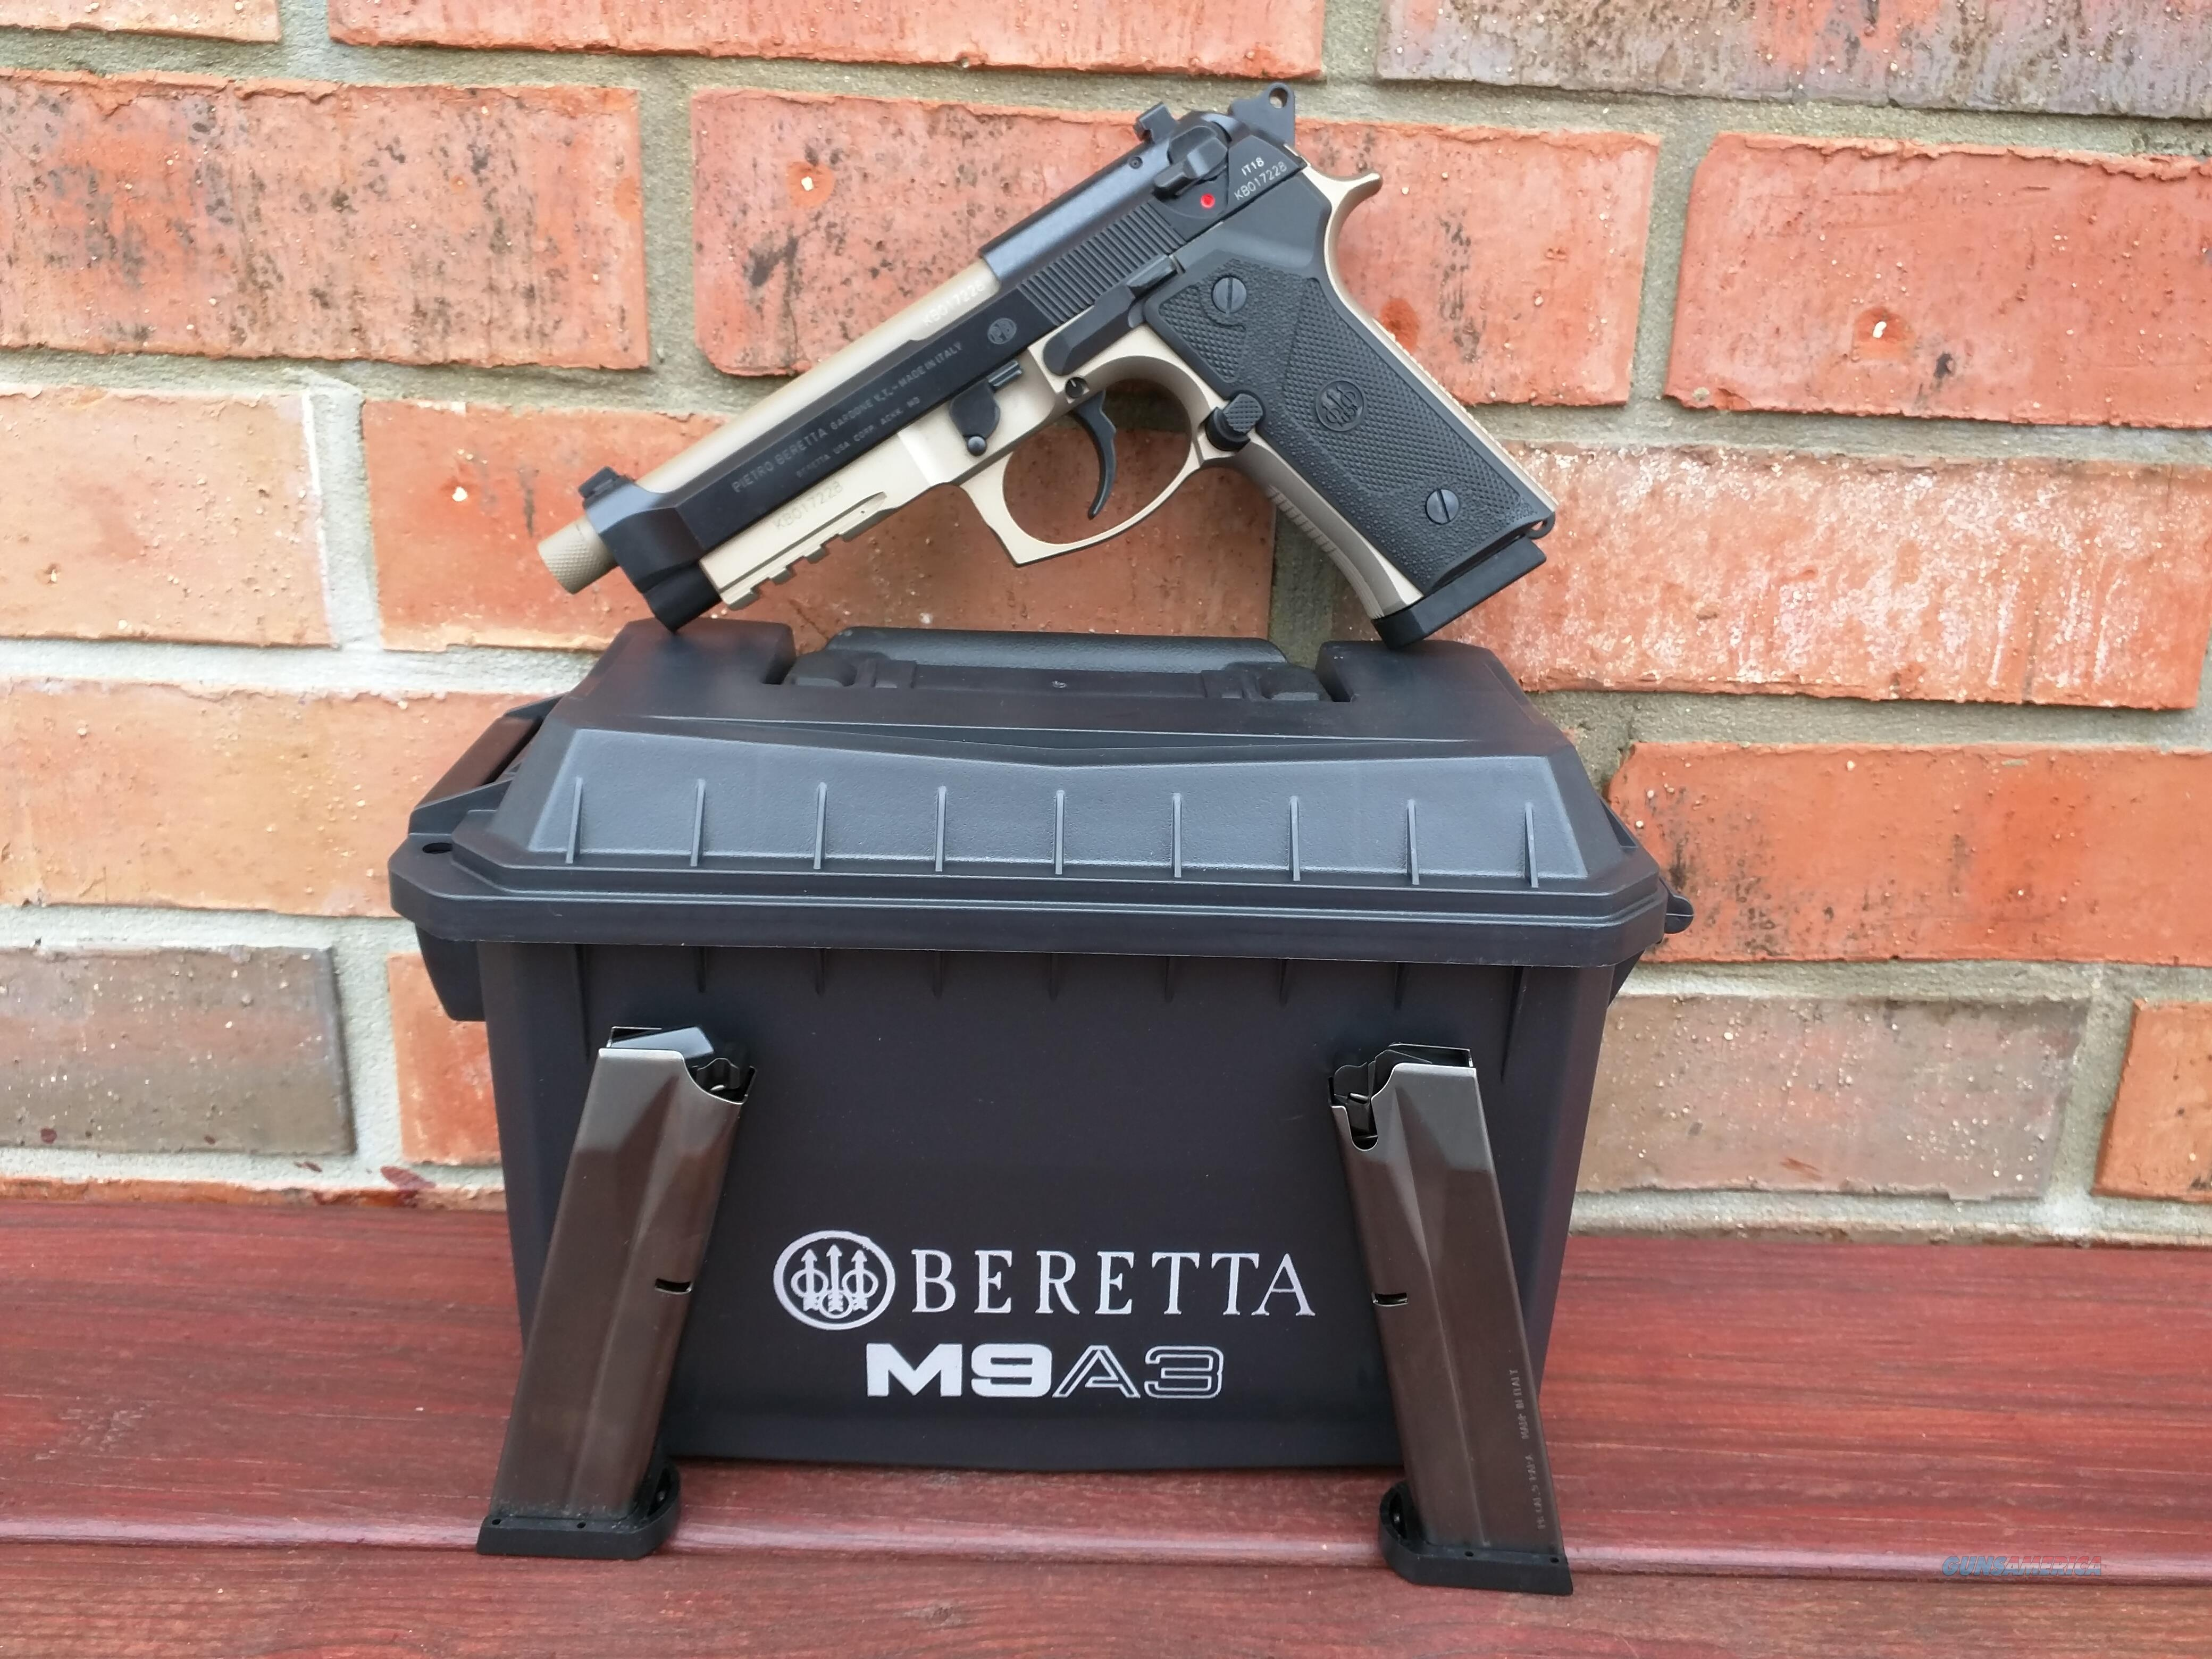 """Beretta M9A3 9mm 2 Tone FDE NEW MODEL Night Sights NIB (3) 17 Rd Mags 2 Sets of Grips 5.2"""" Threaded Barrel Ammo Can Style Case Made in Italy FREE LAYAWAY!! SALE!!  Guns > Pistols > Beretta Pistols > M9"""